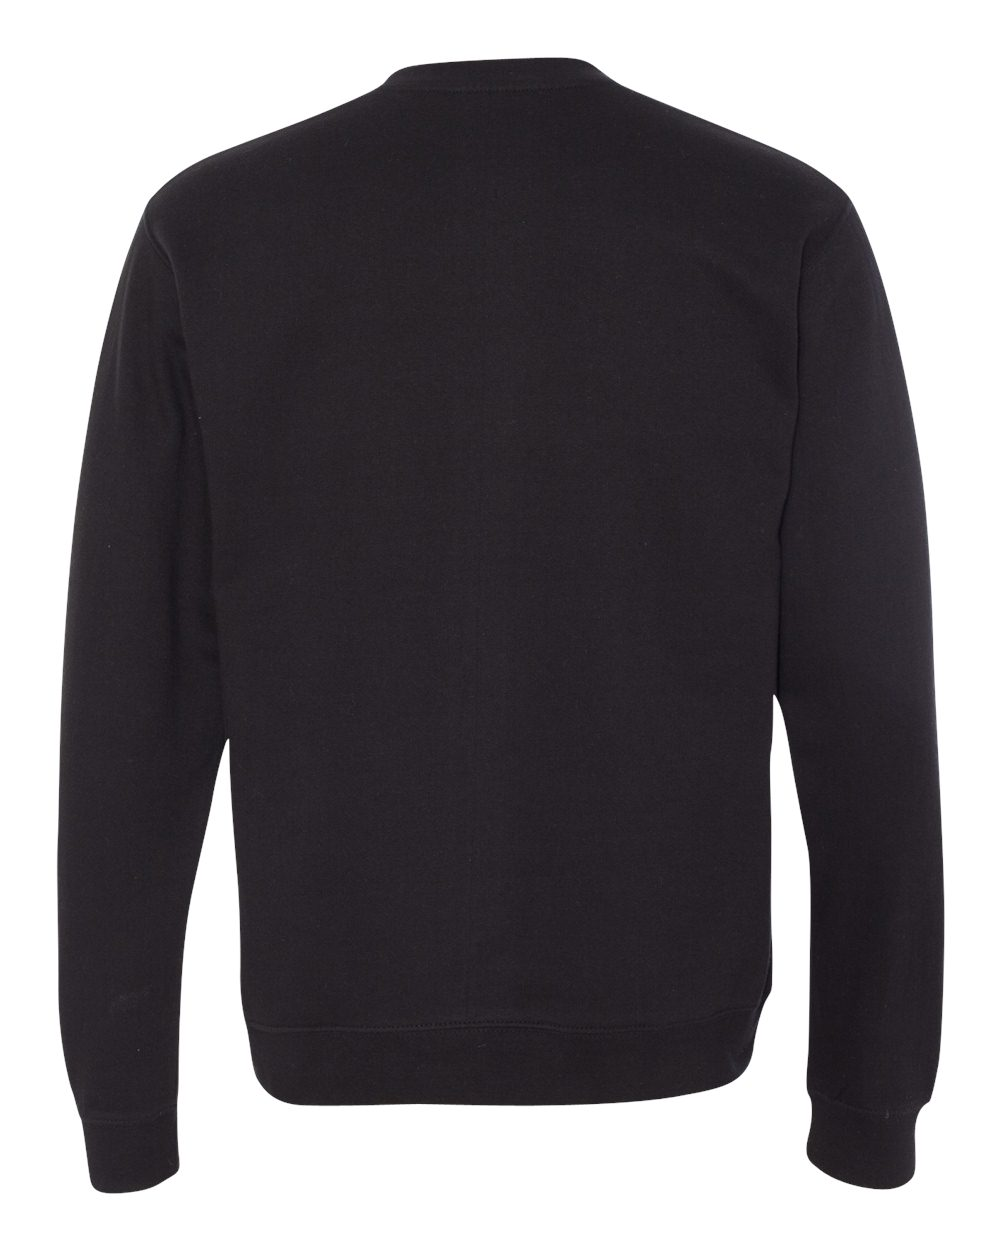 Independent-Trading-Co-Midweight-Crewneck-Sweatshirt-SS3000-up-to-3XL miniature 10